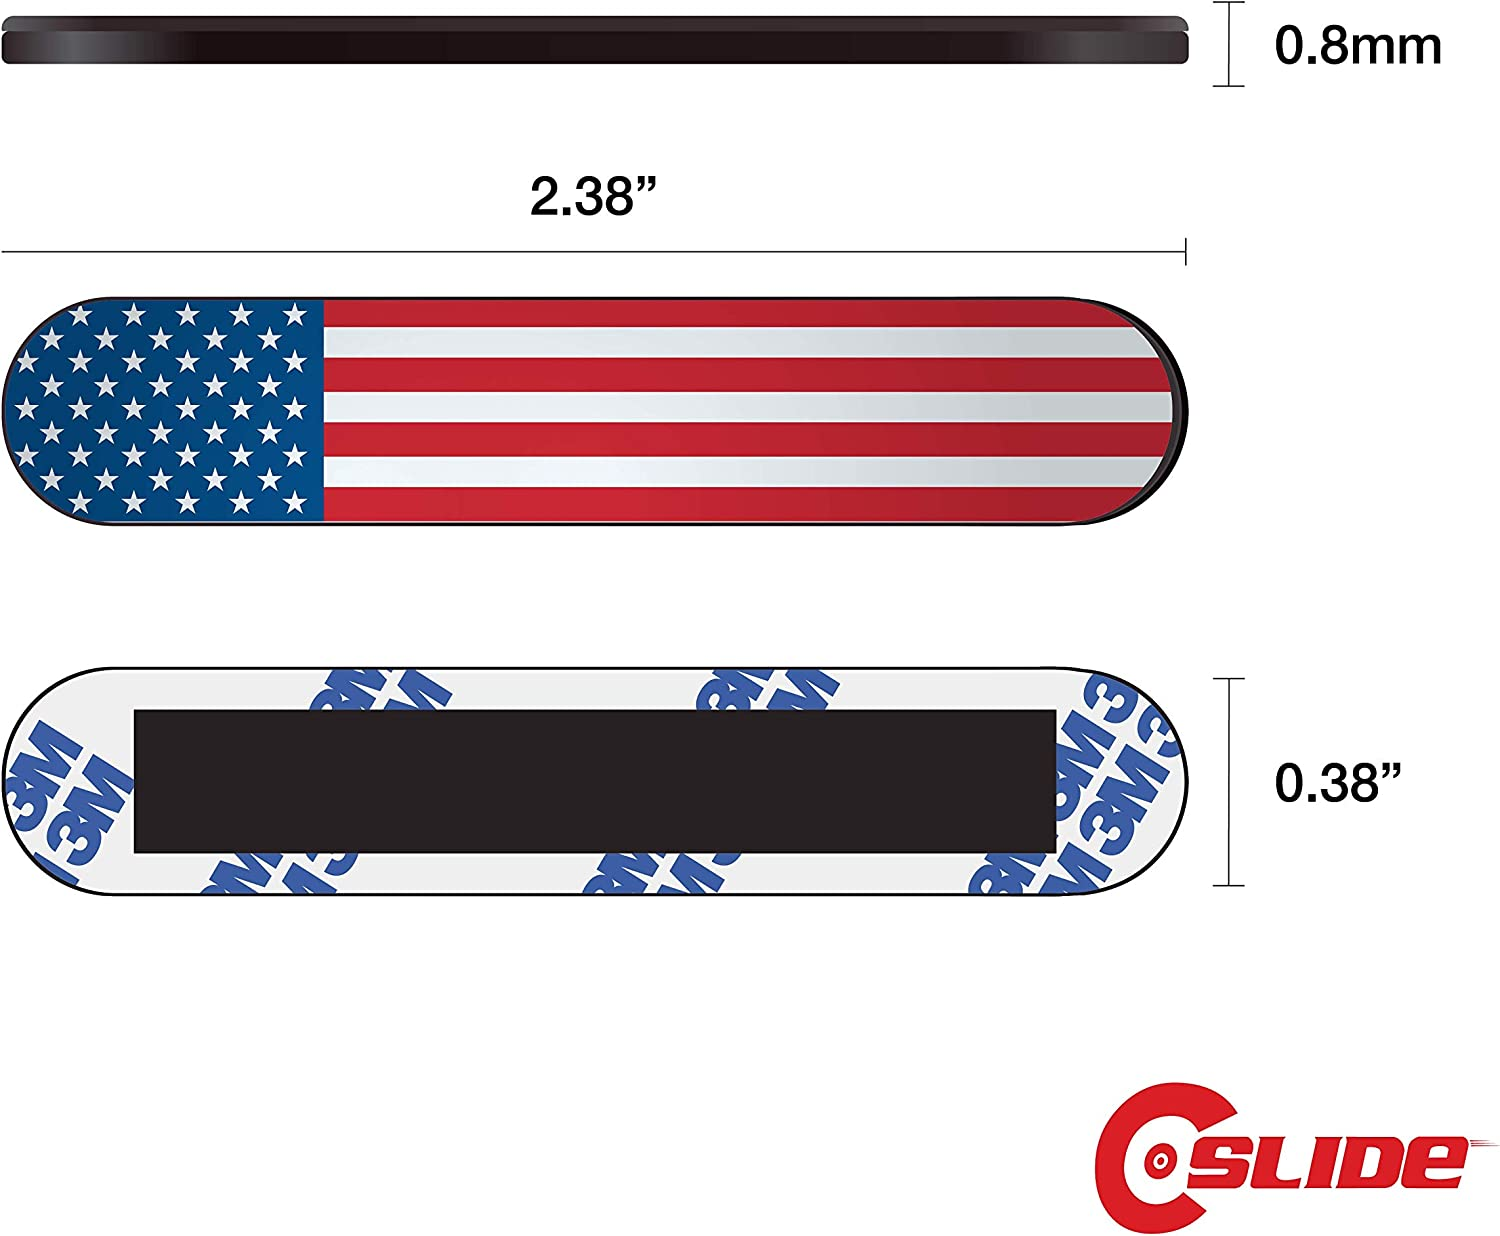 "C-Slide Webcam Cover - Razor Strip Thin Laptop Dual Cam Blocker, US Flag, 1.7"" x 0.37"" and 0.8 mm Thick – Double Camera Slide Blocker for Computer, Mac, Dell, Lenovo, Echo Show"